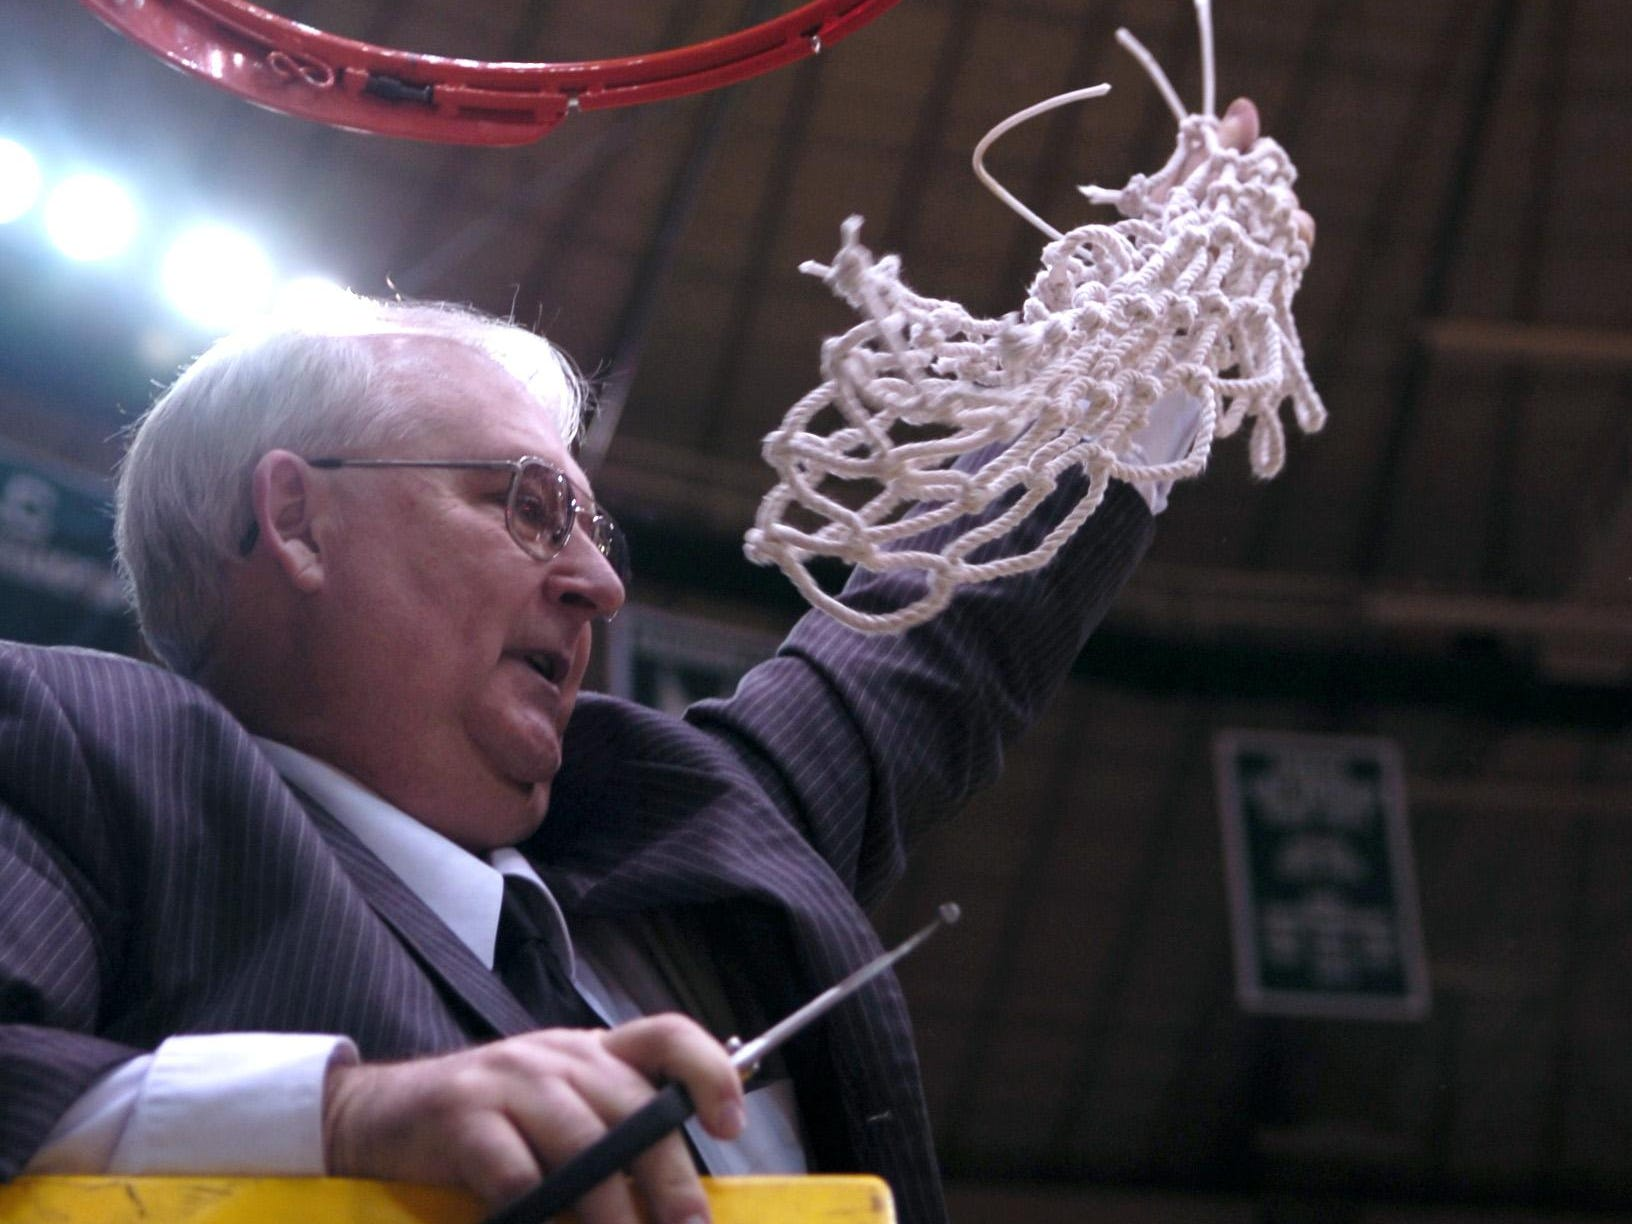 Then-Chillicothe coach Gary Kellough waves the net after the Cavaliers' win at Ohio University's Convocation Center in 2008 that sent them to the Final Four and eventual state championship.